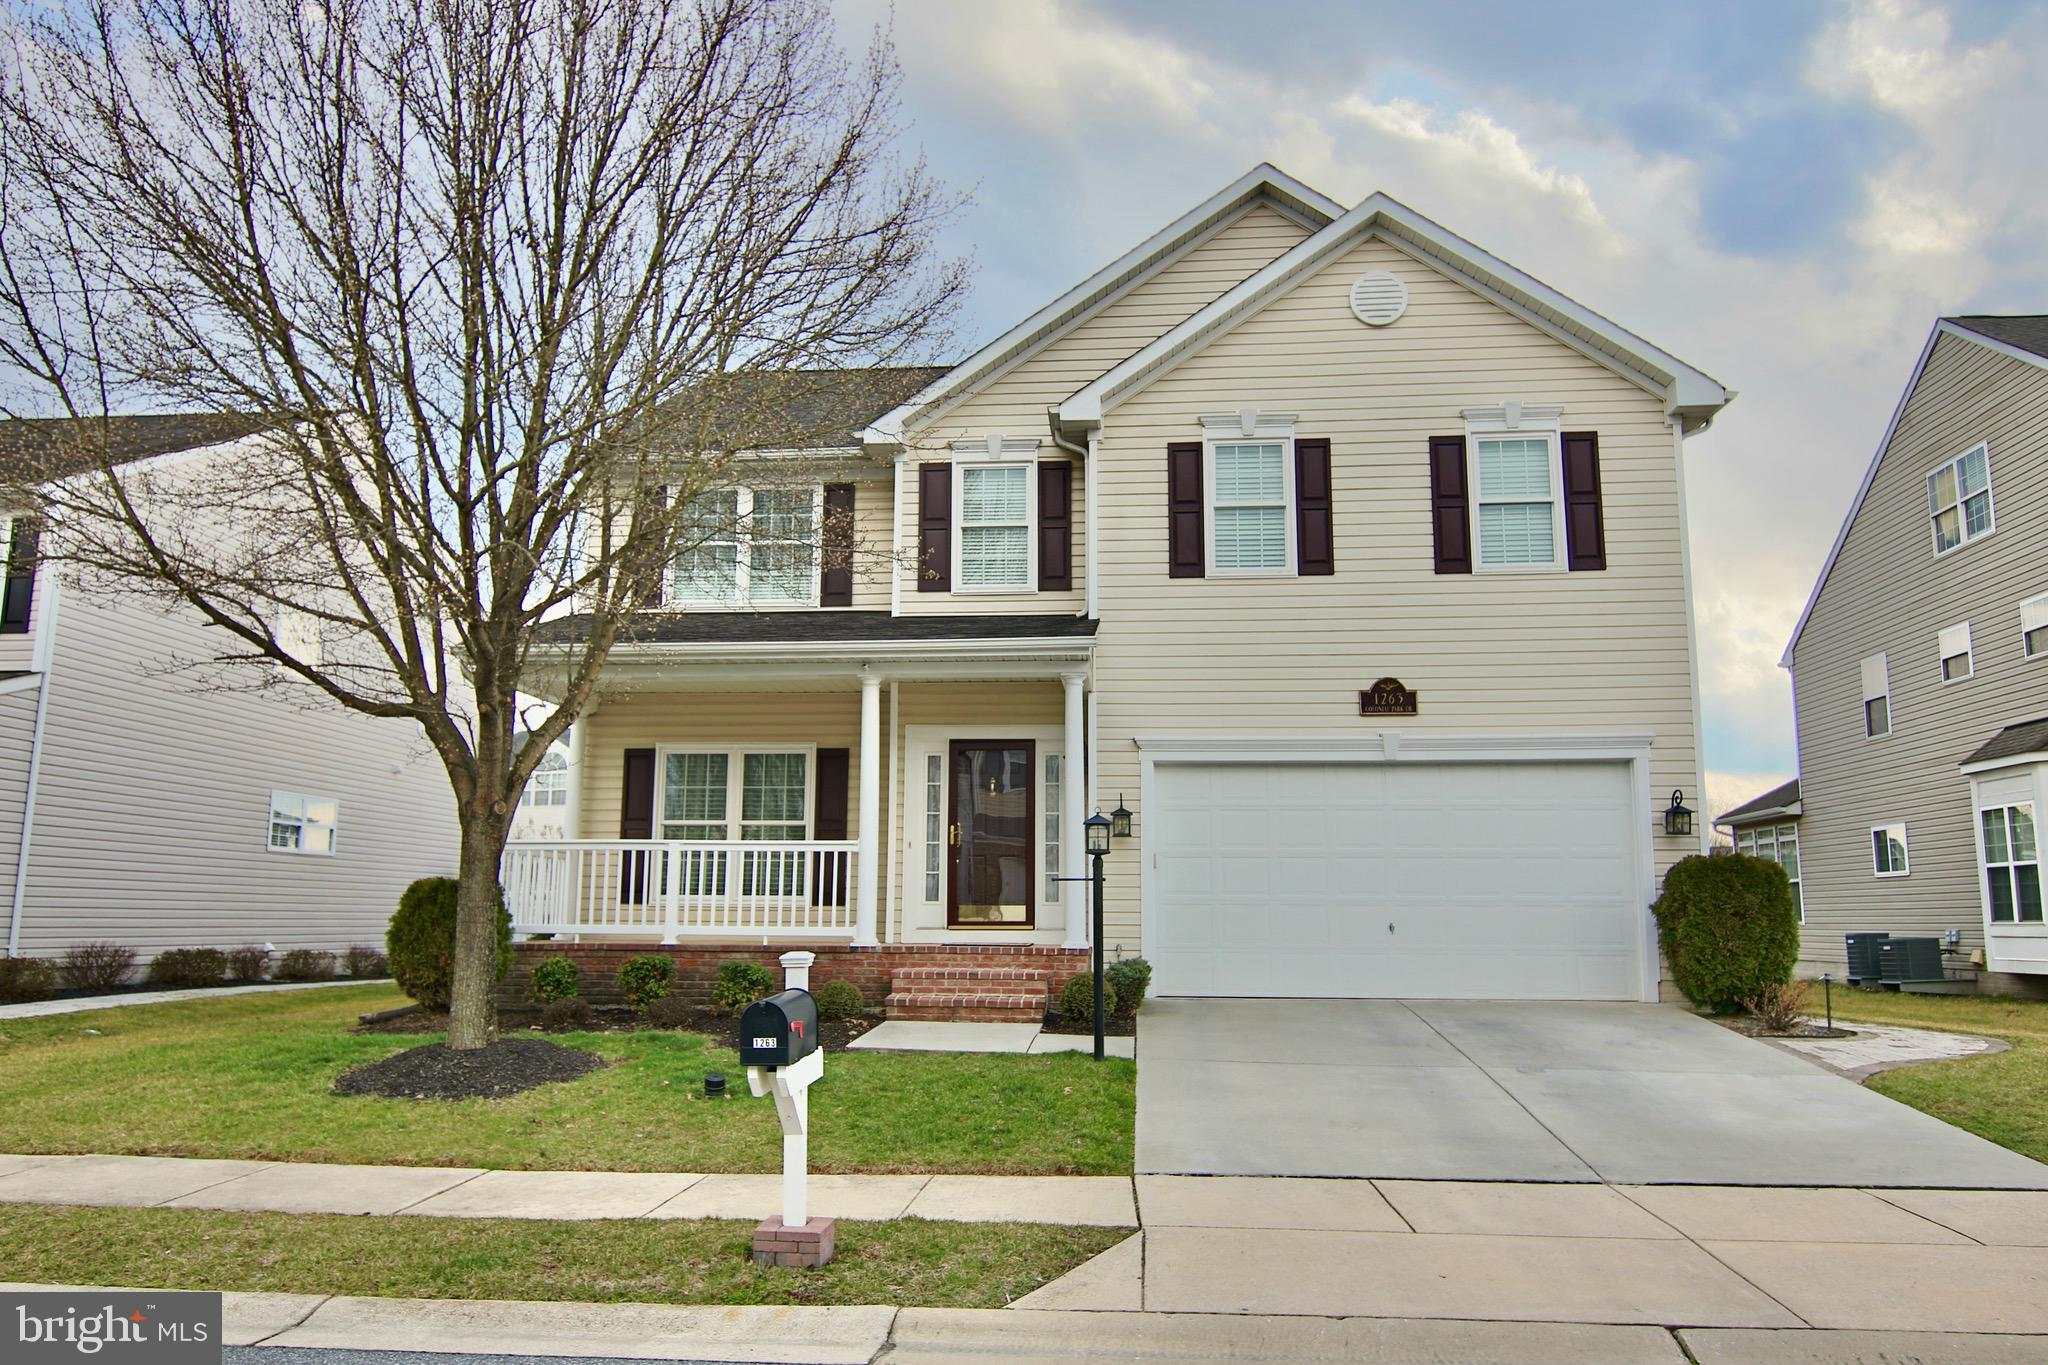 1263 COLONIAL PARK DRIVE, SEVERN, MD 21144